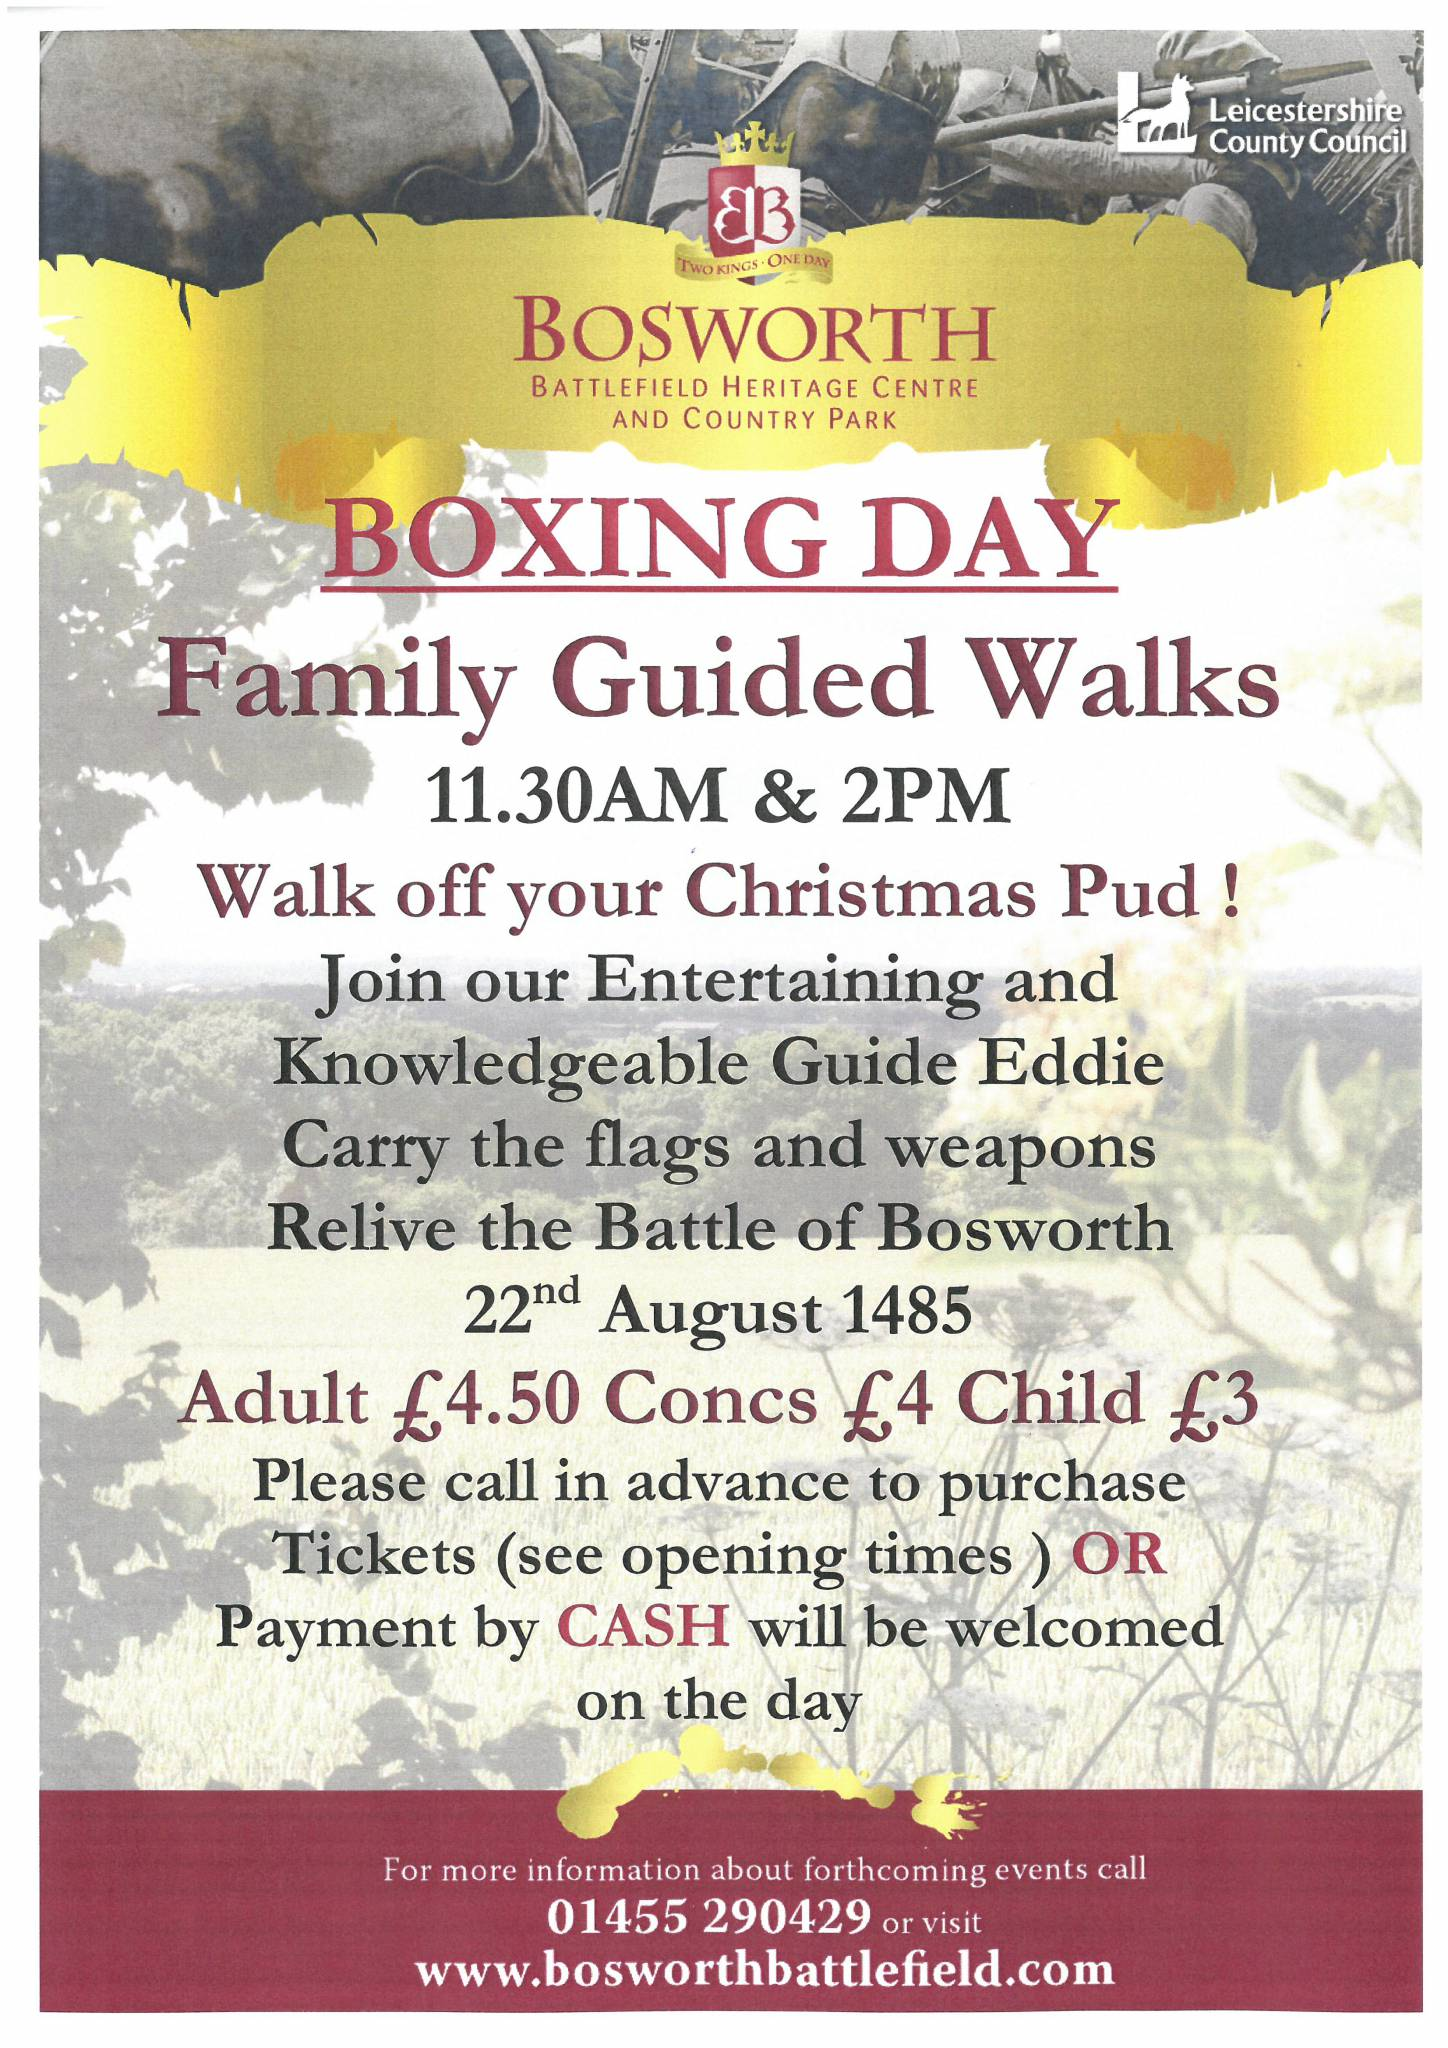 BOXING DAY: Family Guided Walk